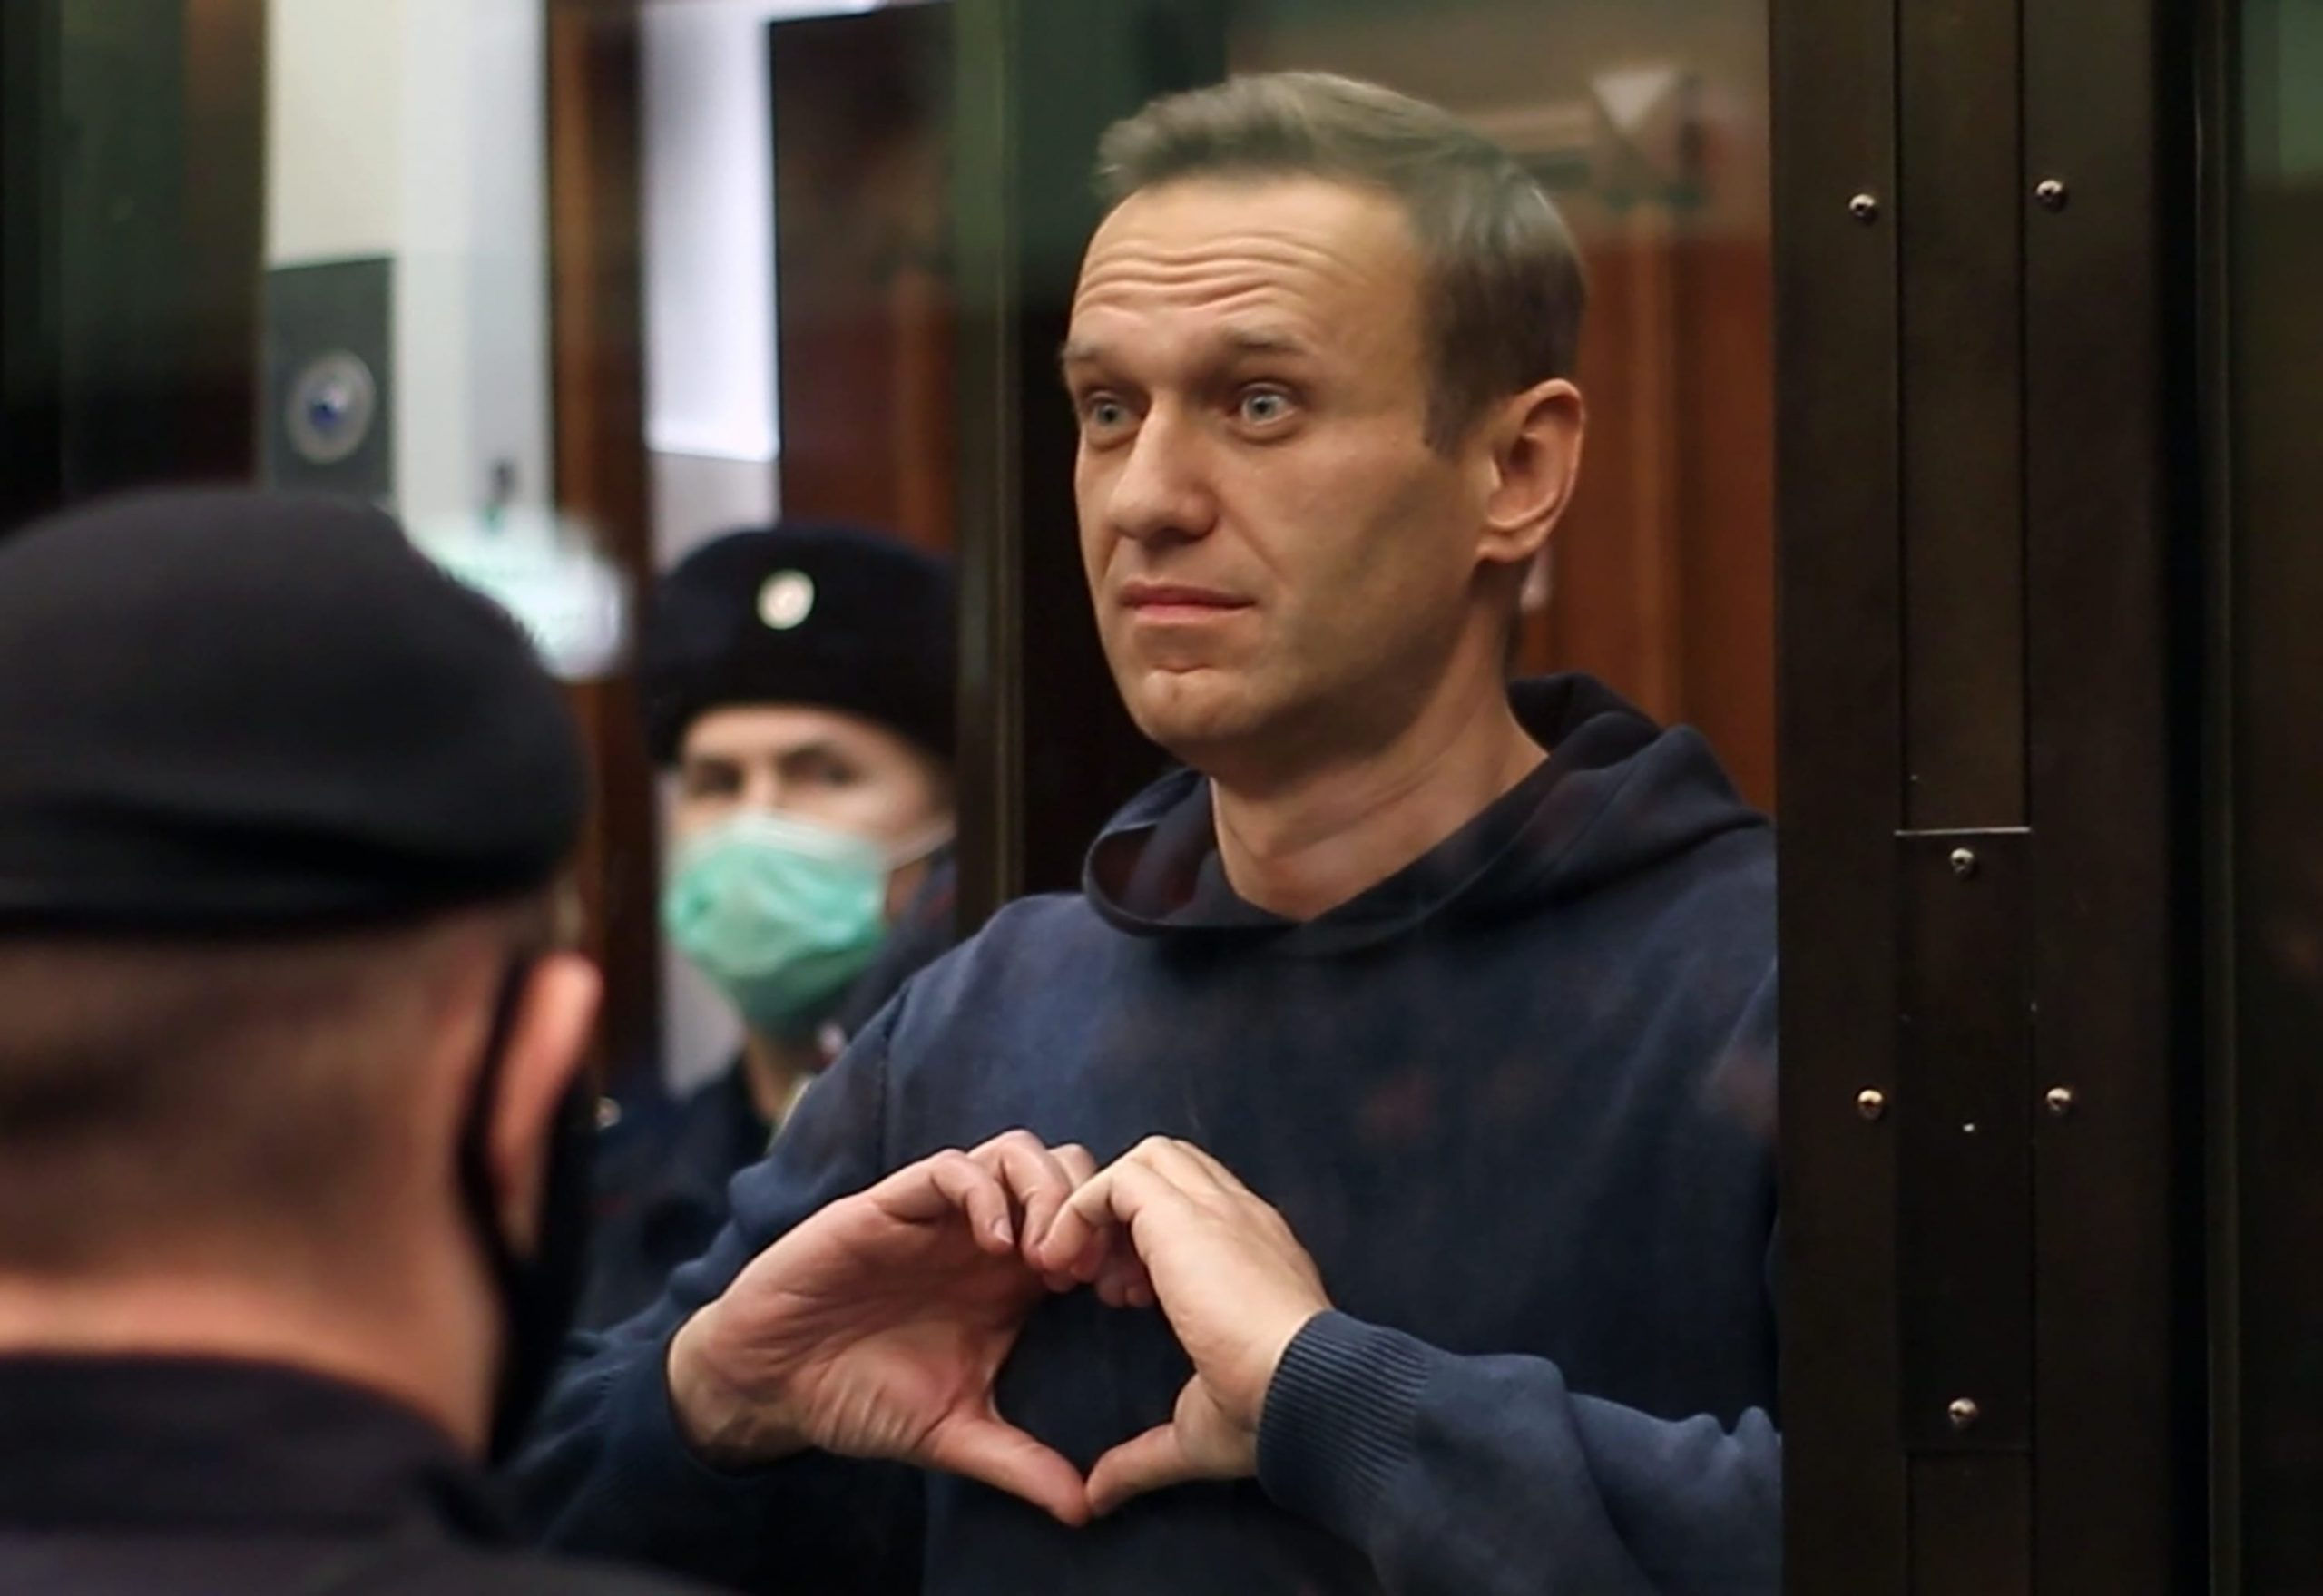 White House warns Russia will face consequences if Alexei Navalny dies